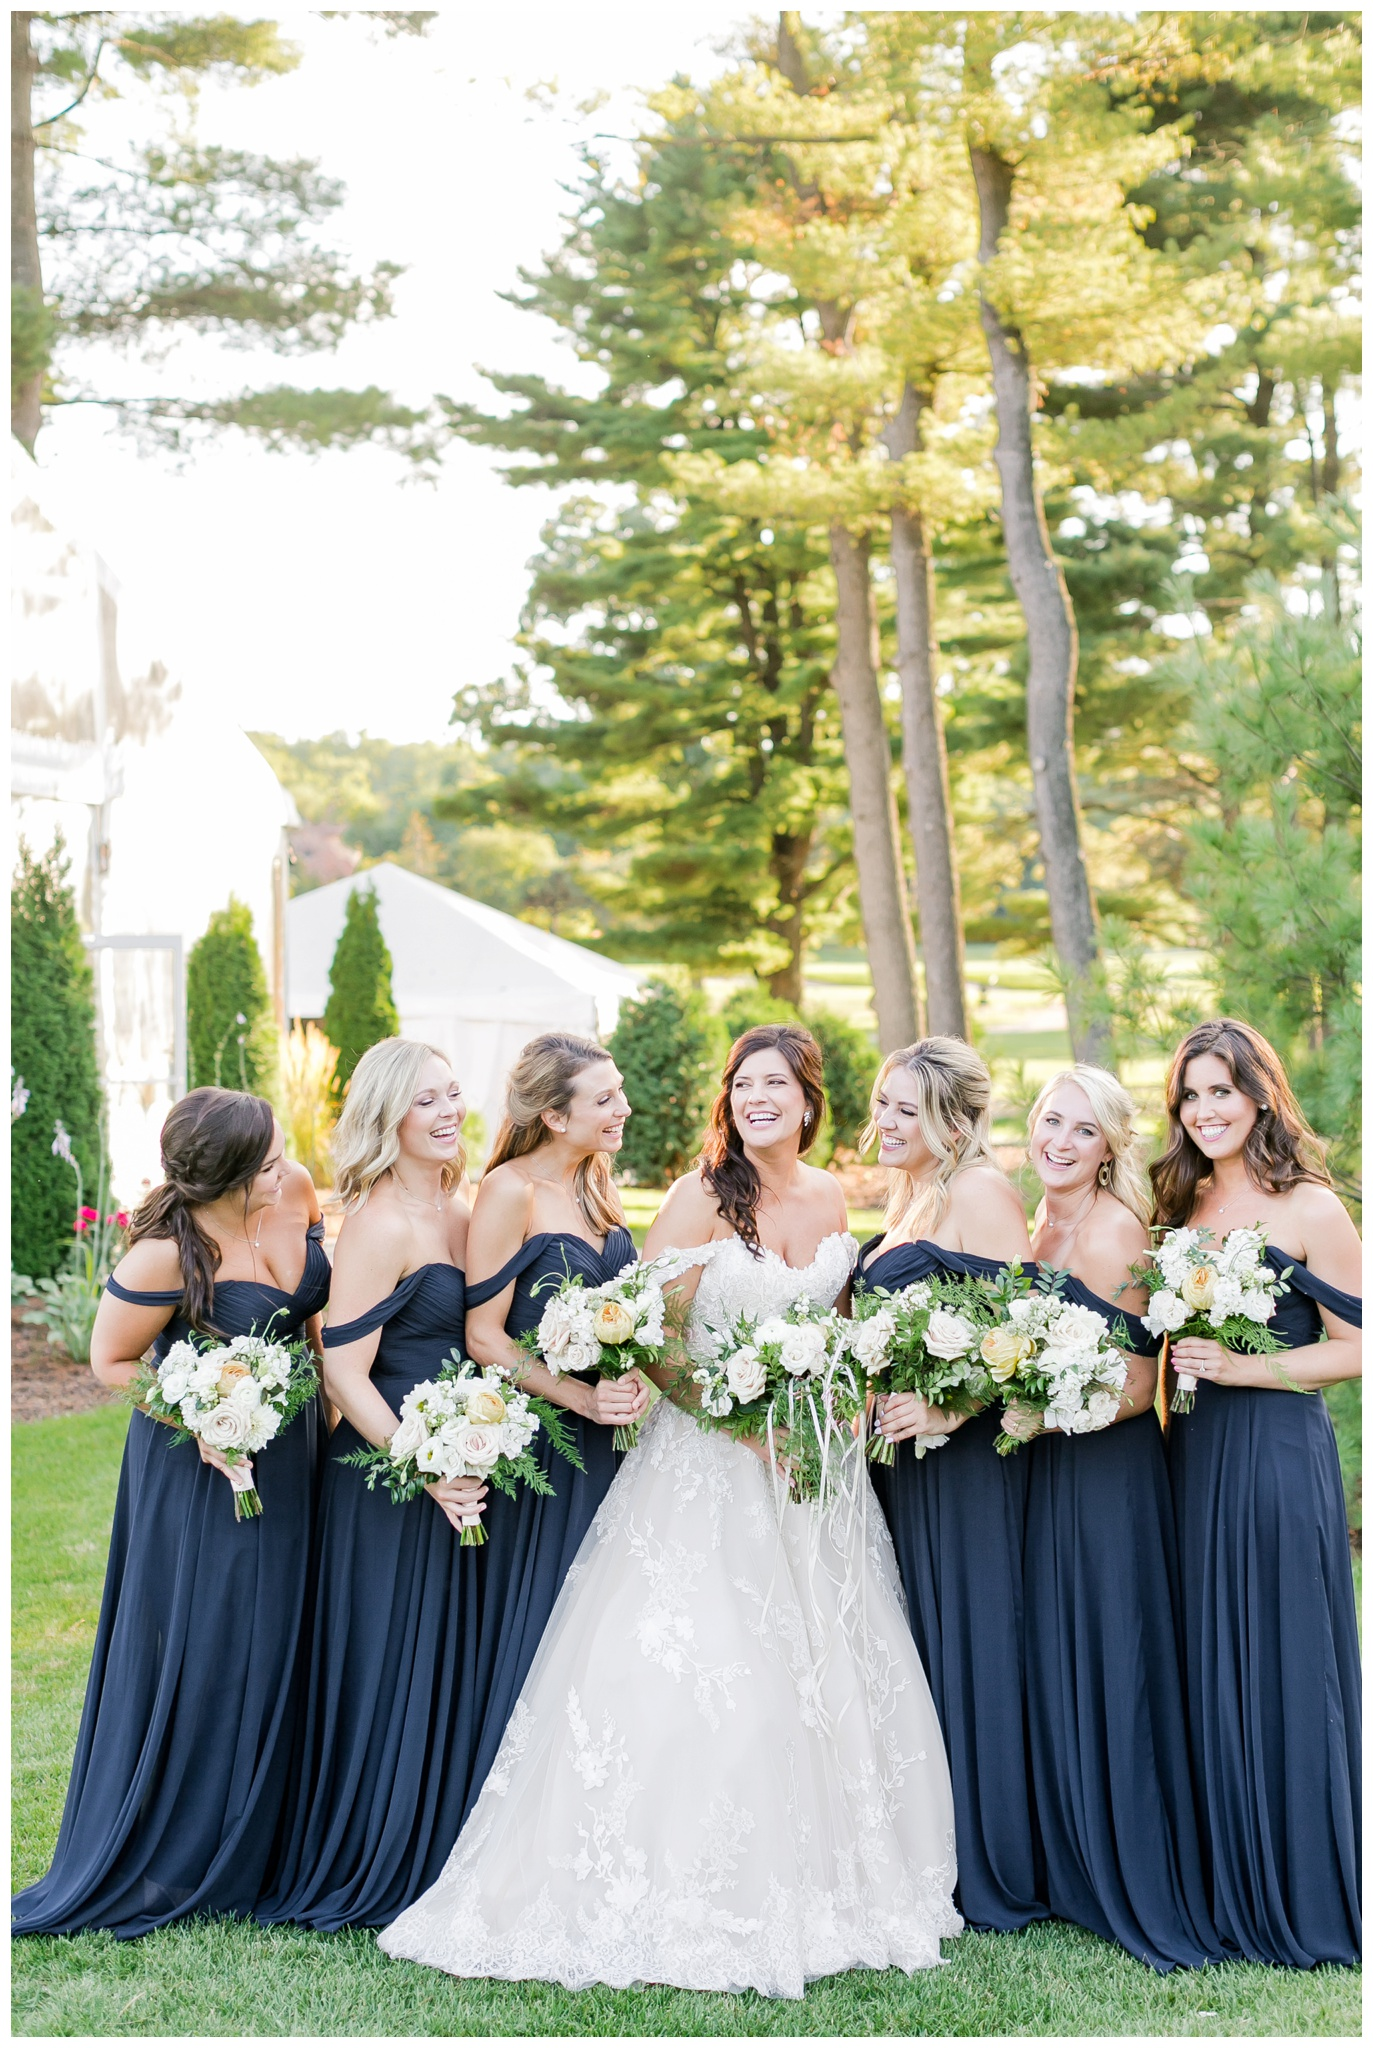 bishops_bay_country_club_wedding_middleton_wisconsin_caynay_photo_4720.jpg